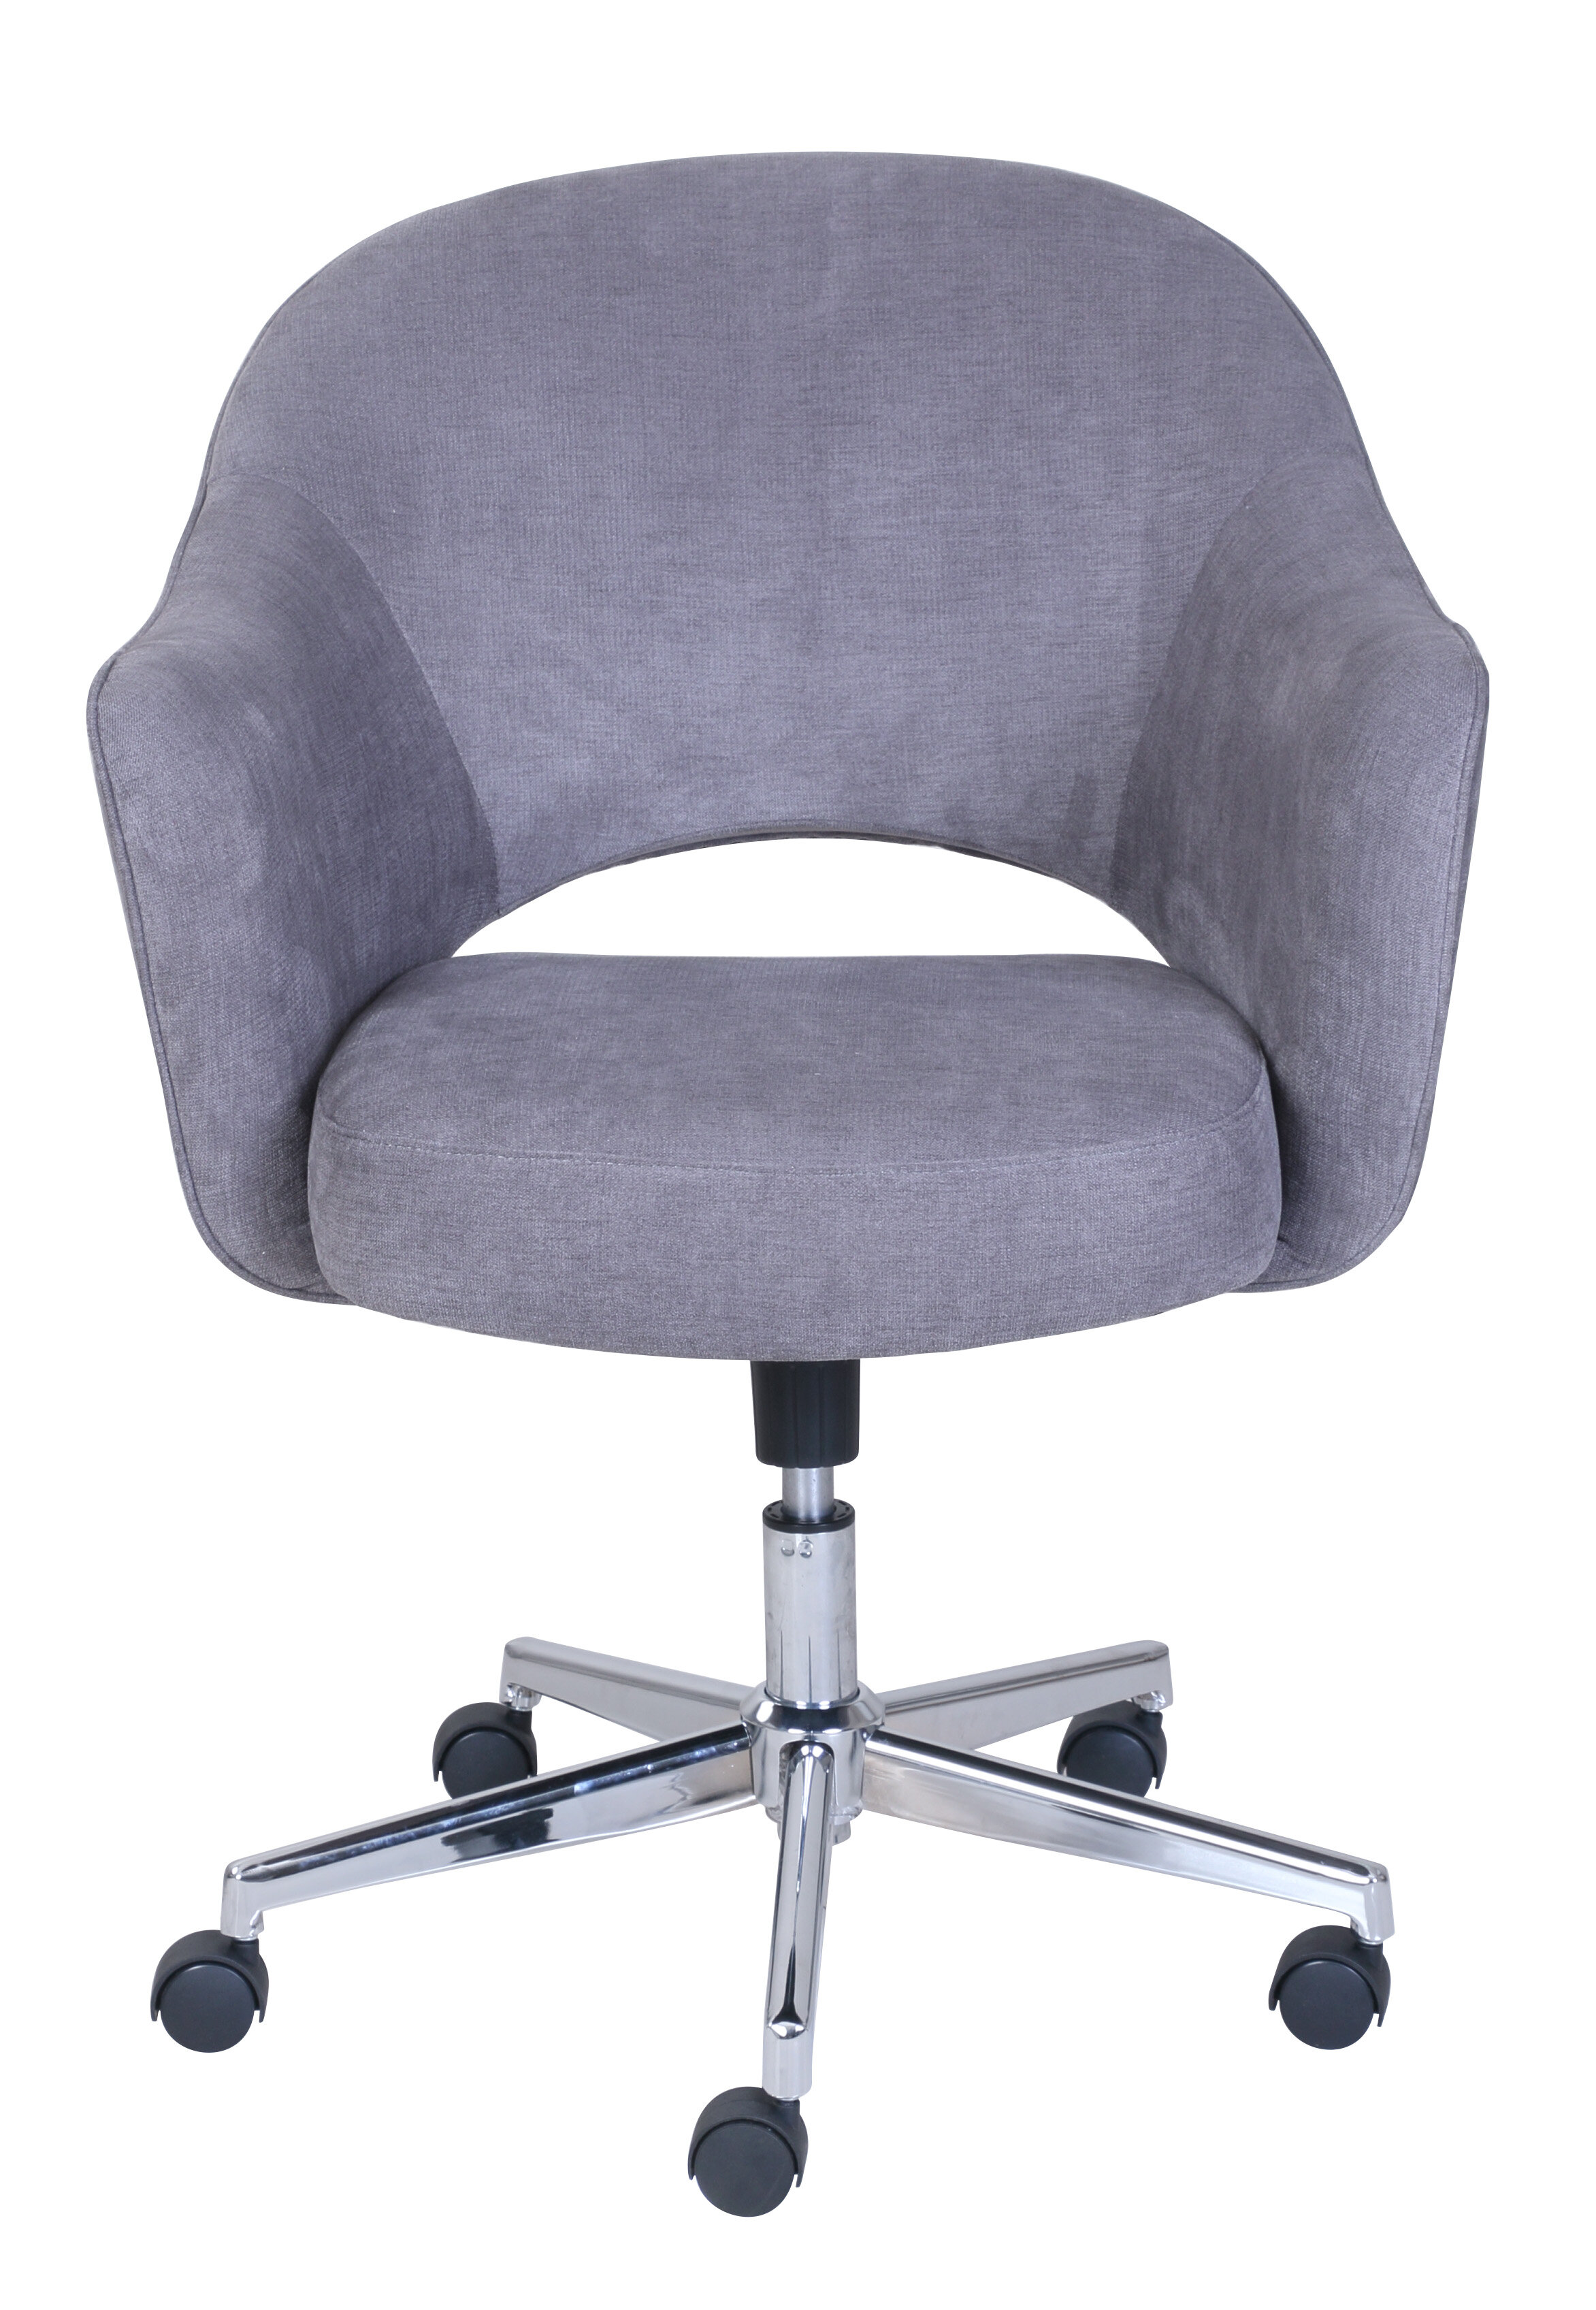 grey lauren executive zoom dark or chair high leather office back desk image aluminum base gray over to larger mouse view genuine click